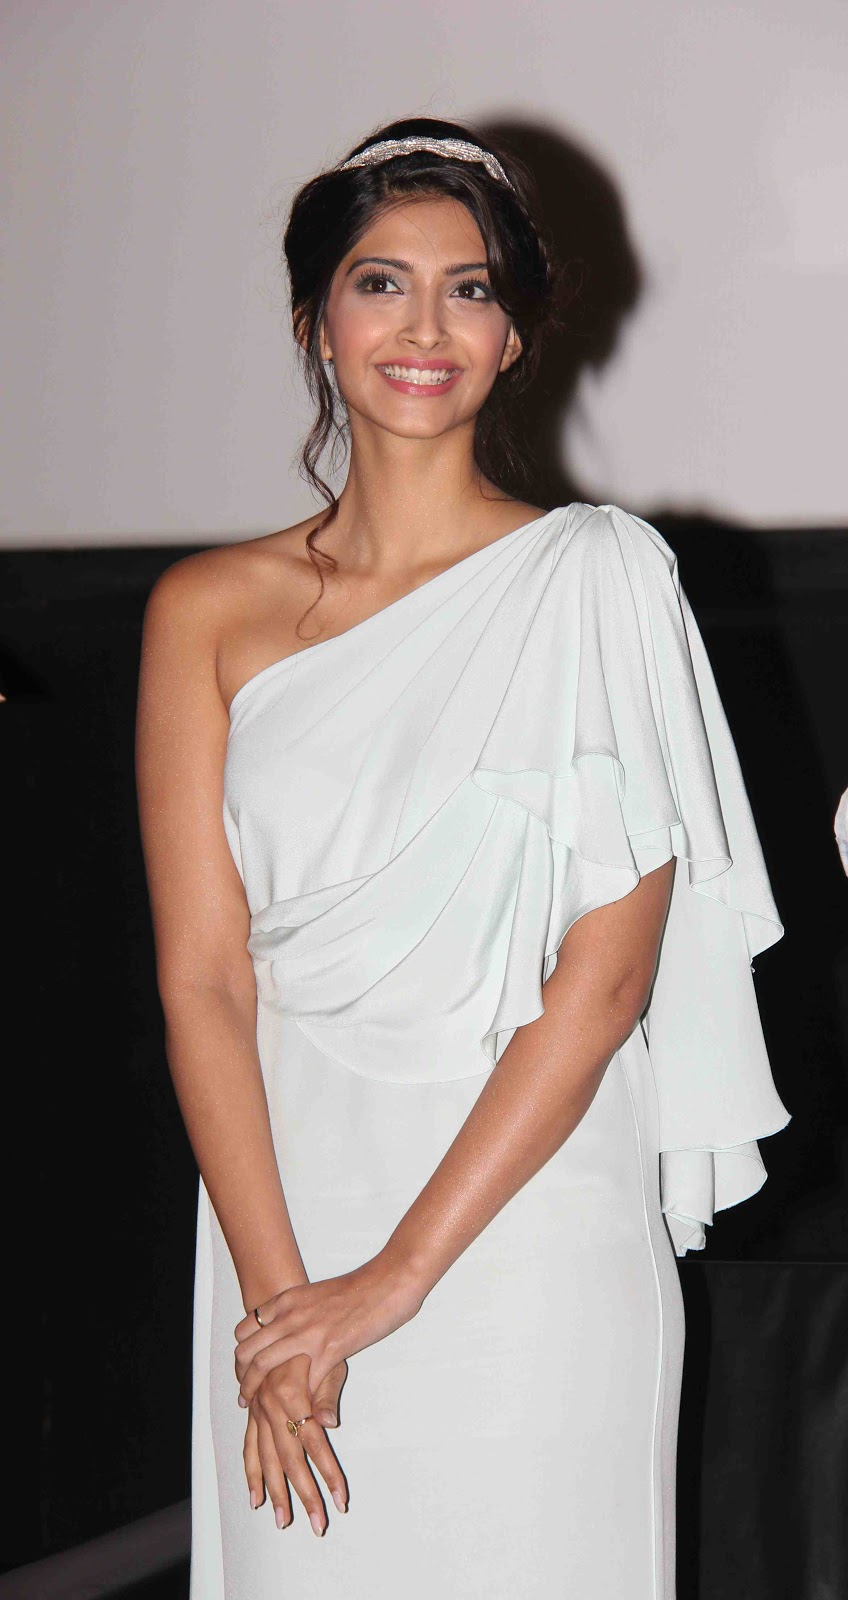 Sonam Kapoor Gorgeous In One Shoulder White Dress At The ...